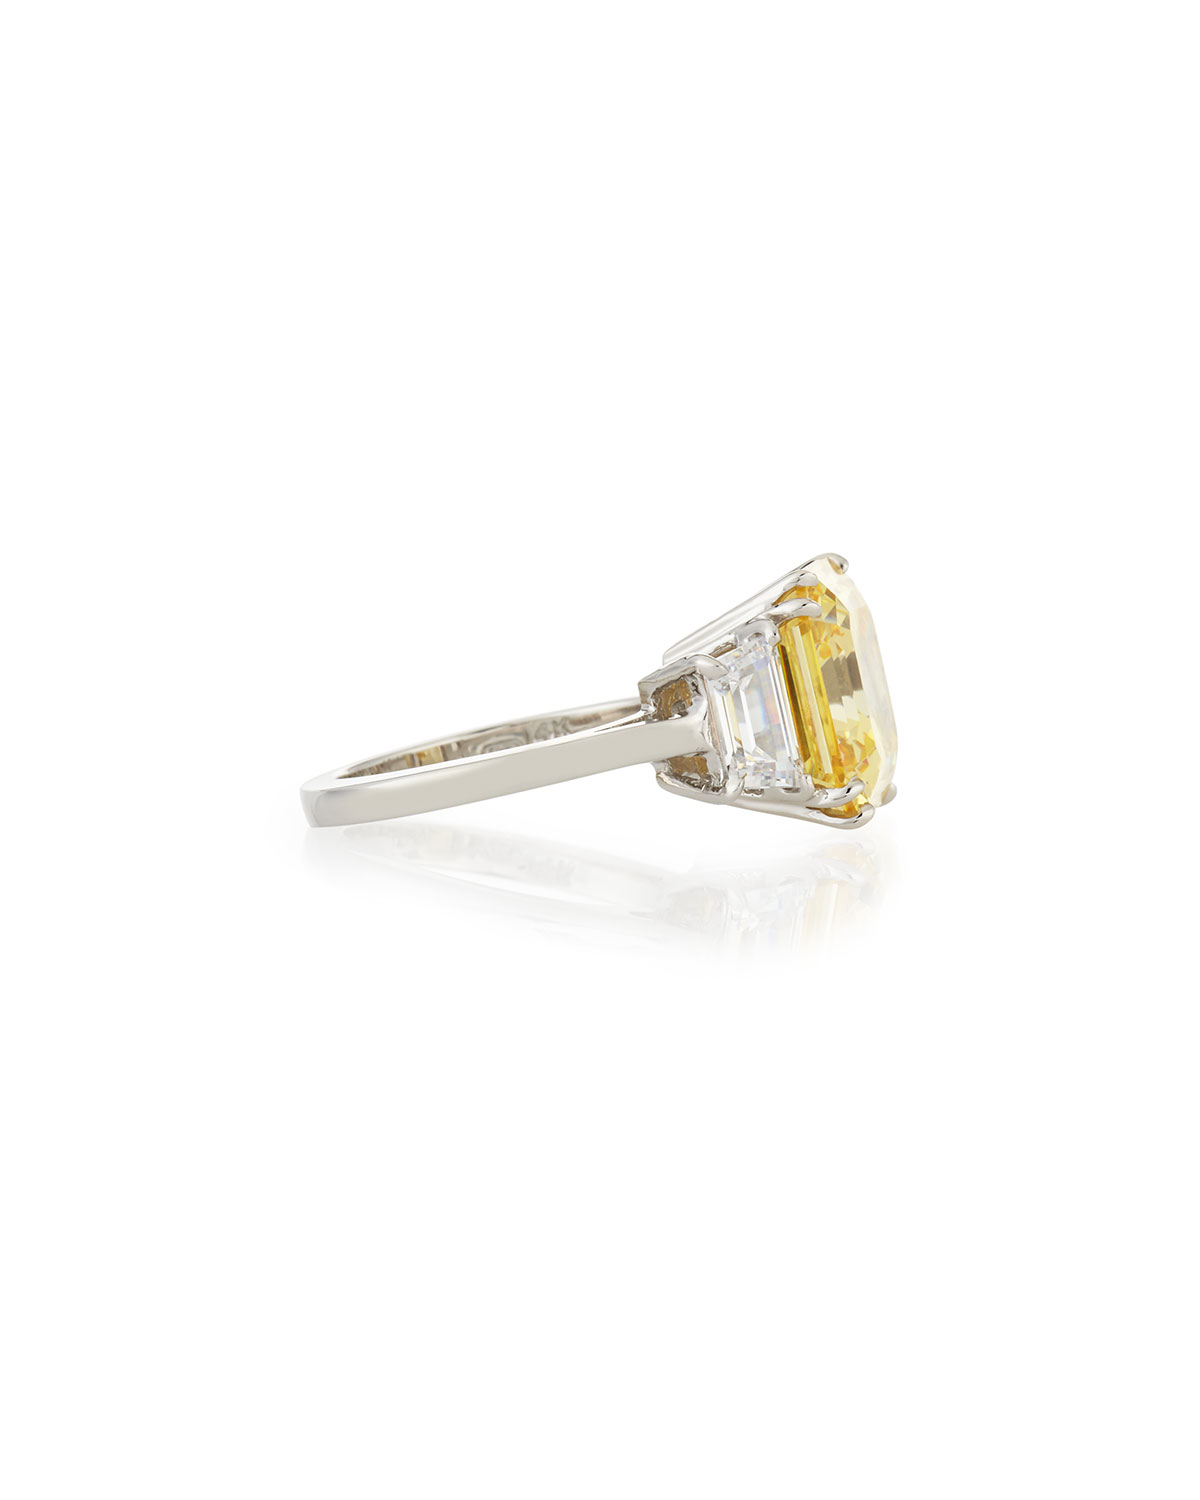 Fantasia Emerald-Cut Canary Solitaire Ring 8SZ2P